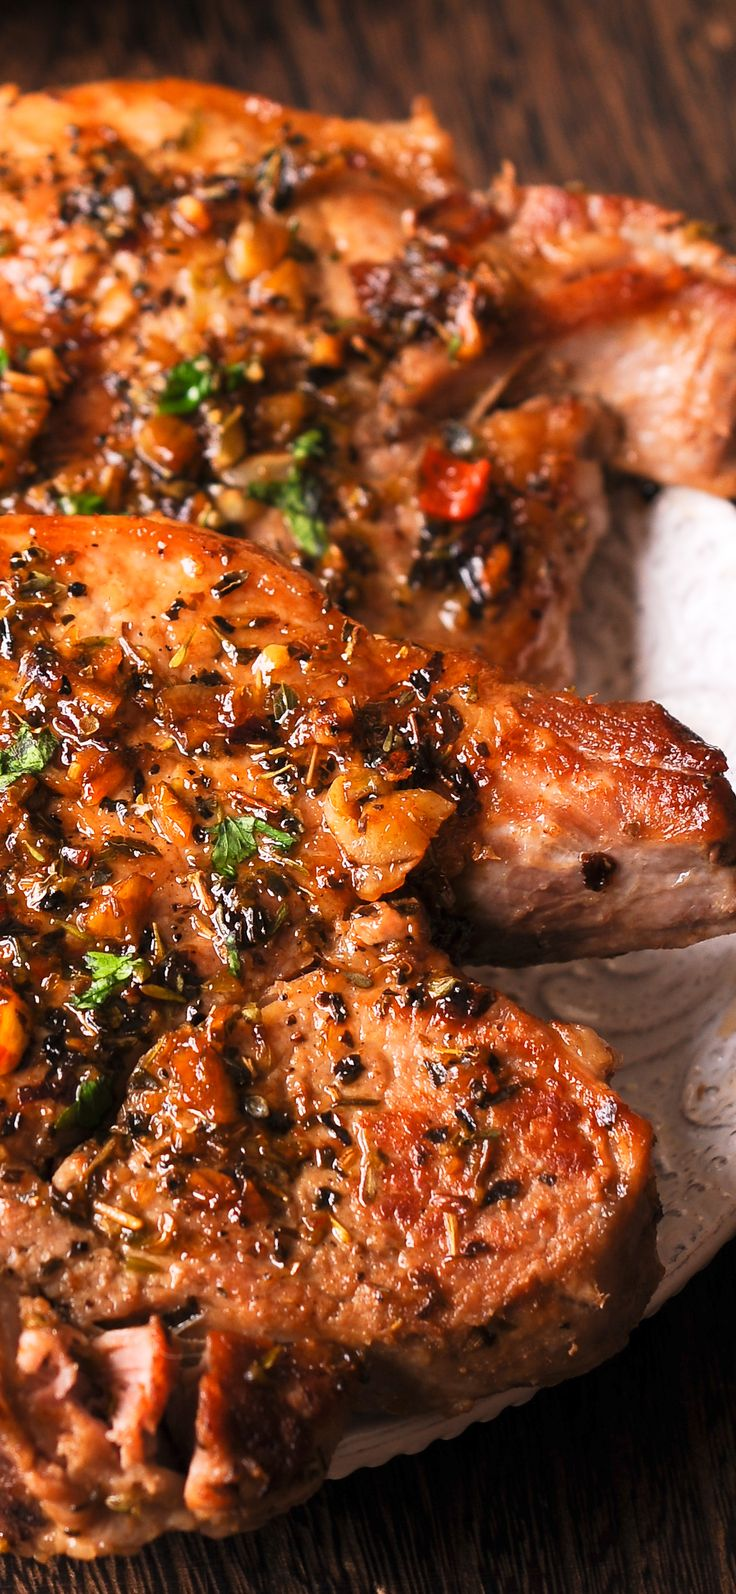 Pork Chops in garlic, herbs, brown sugar and wine sauce